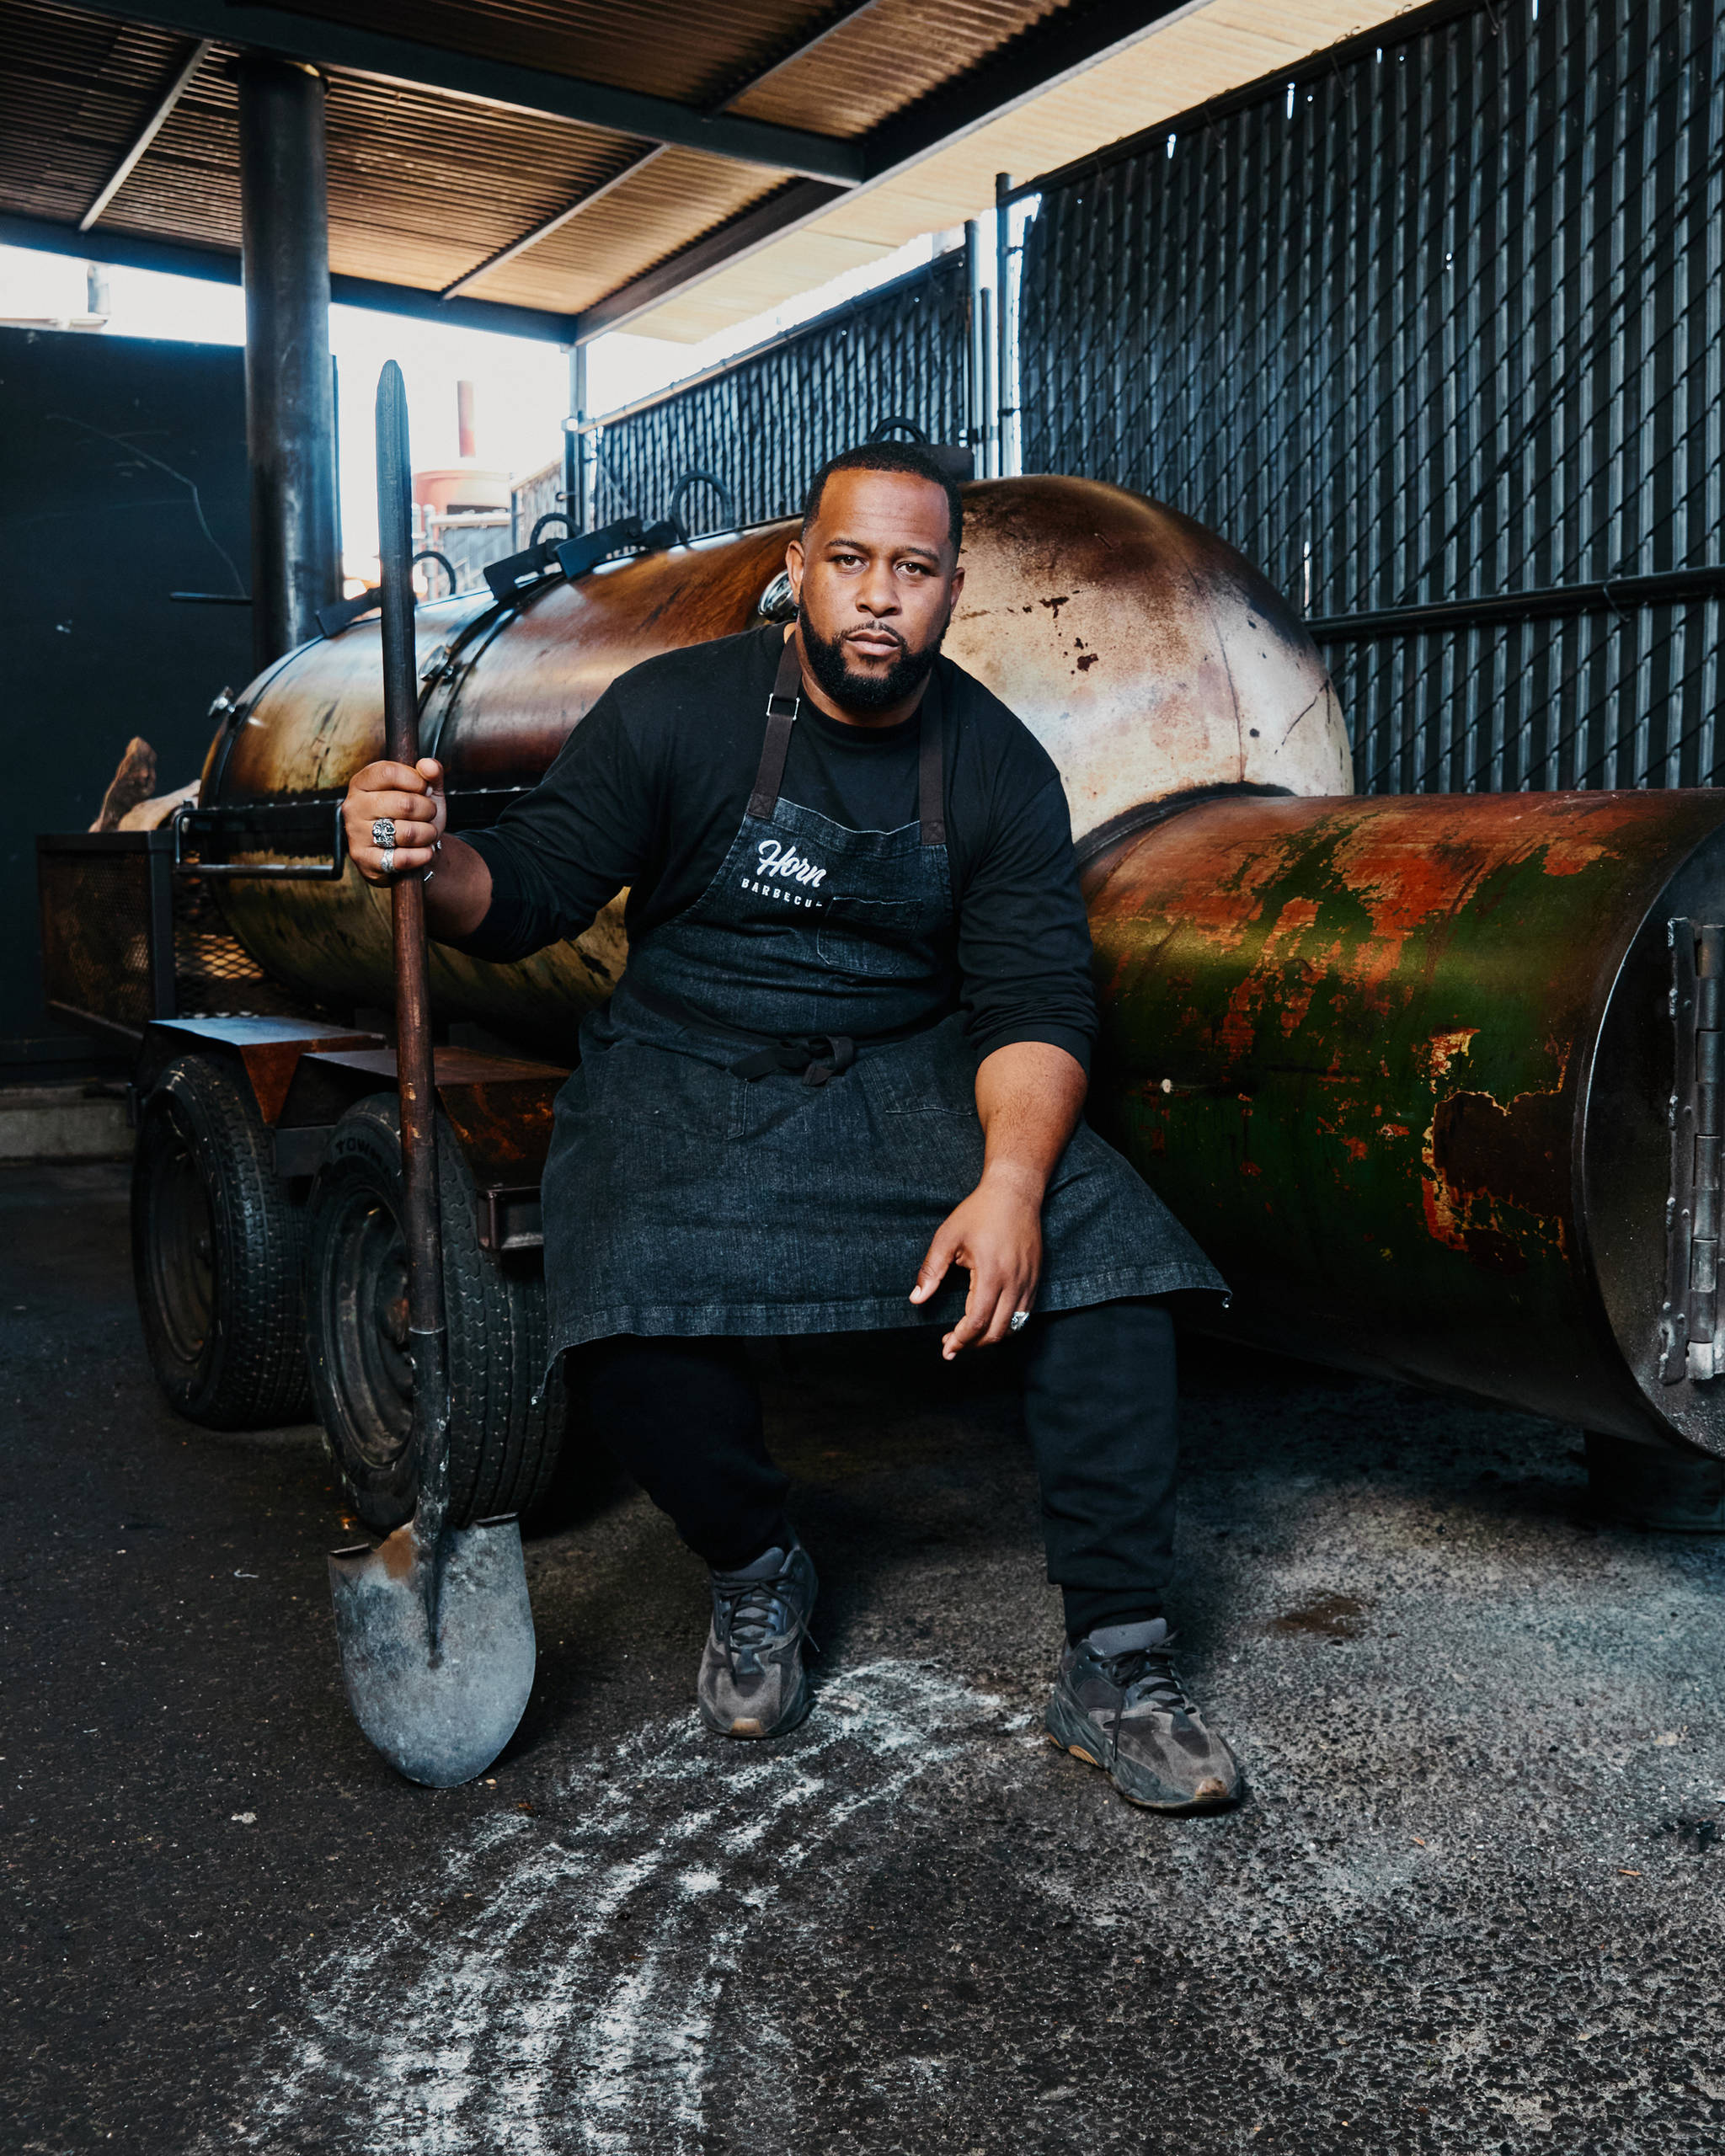 Matt Horn, owner of Horn Barbecue in Oakland, learned how to smoke meat in his grandmother's backyard.<ins> (Adam Amengual/New York Times)</ins>